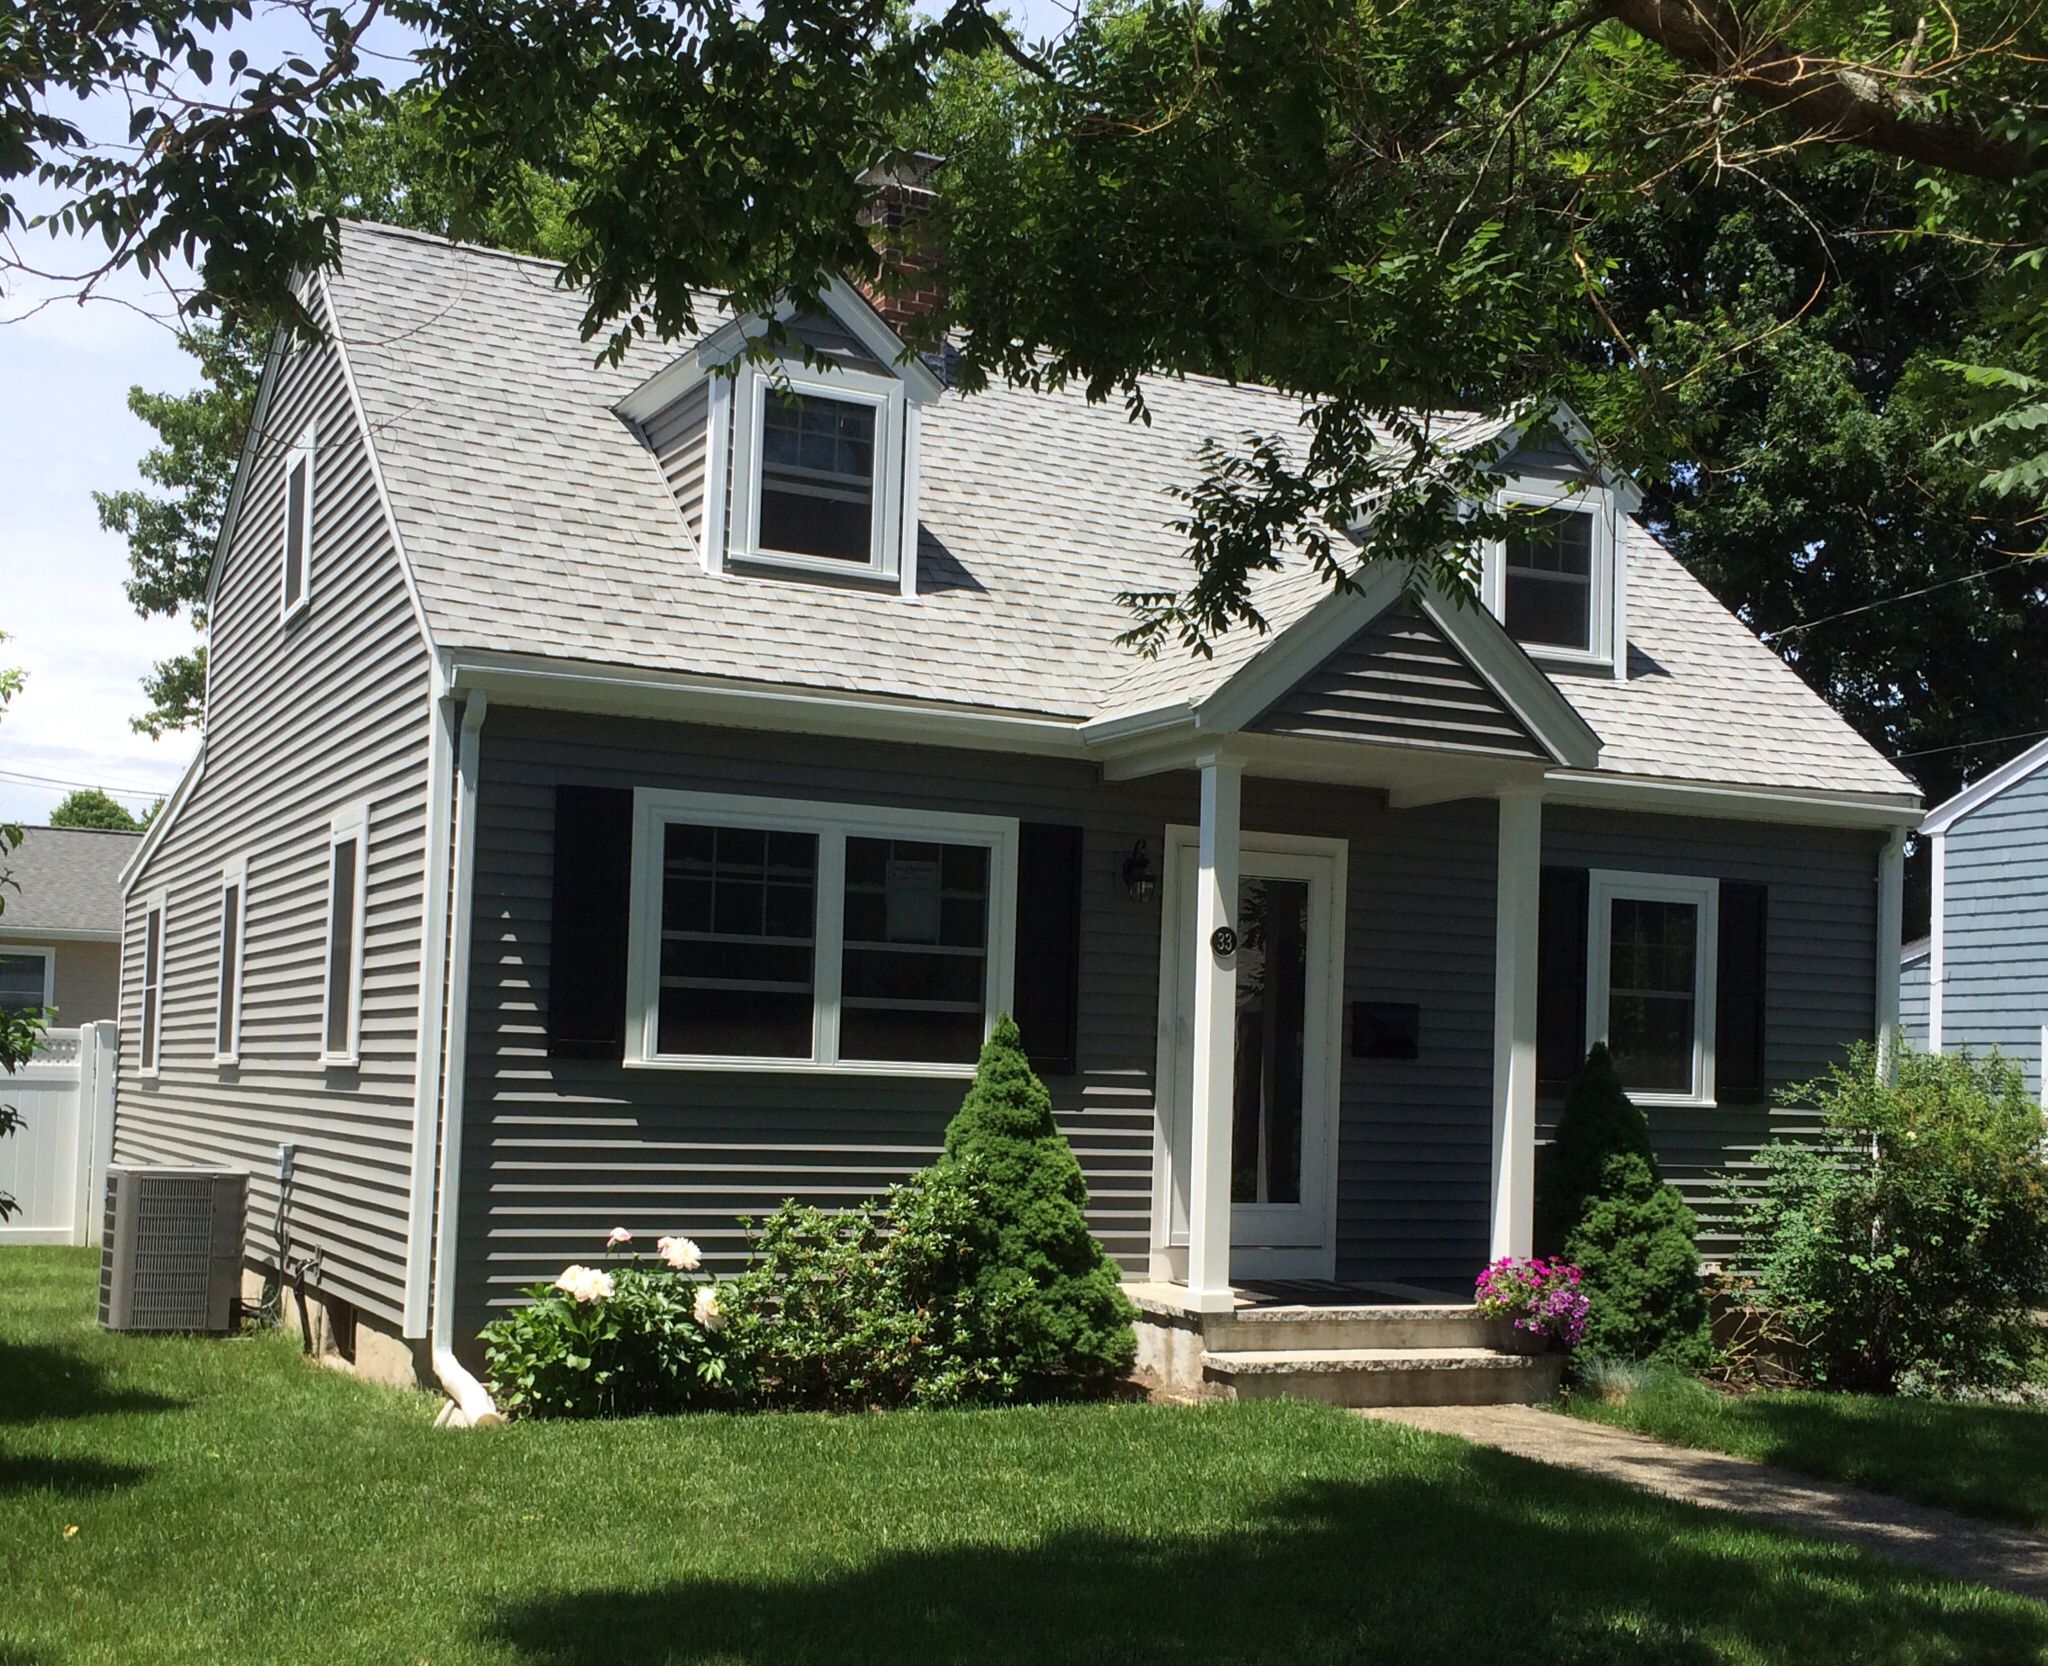 Certainteed corporation siding in charcoal gray and for Exterior vinyl siding